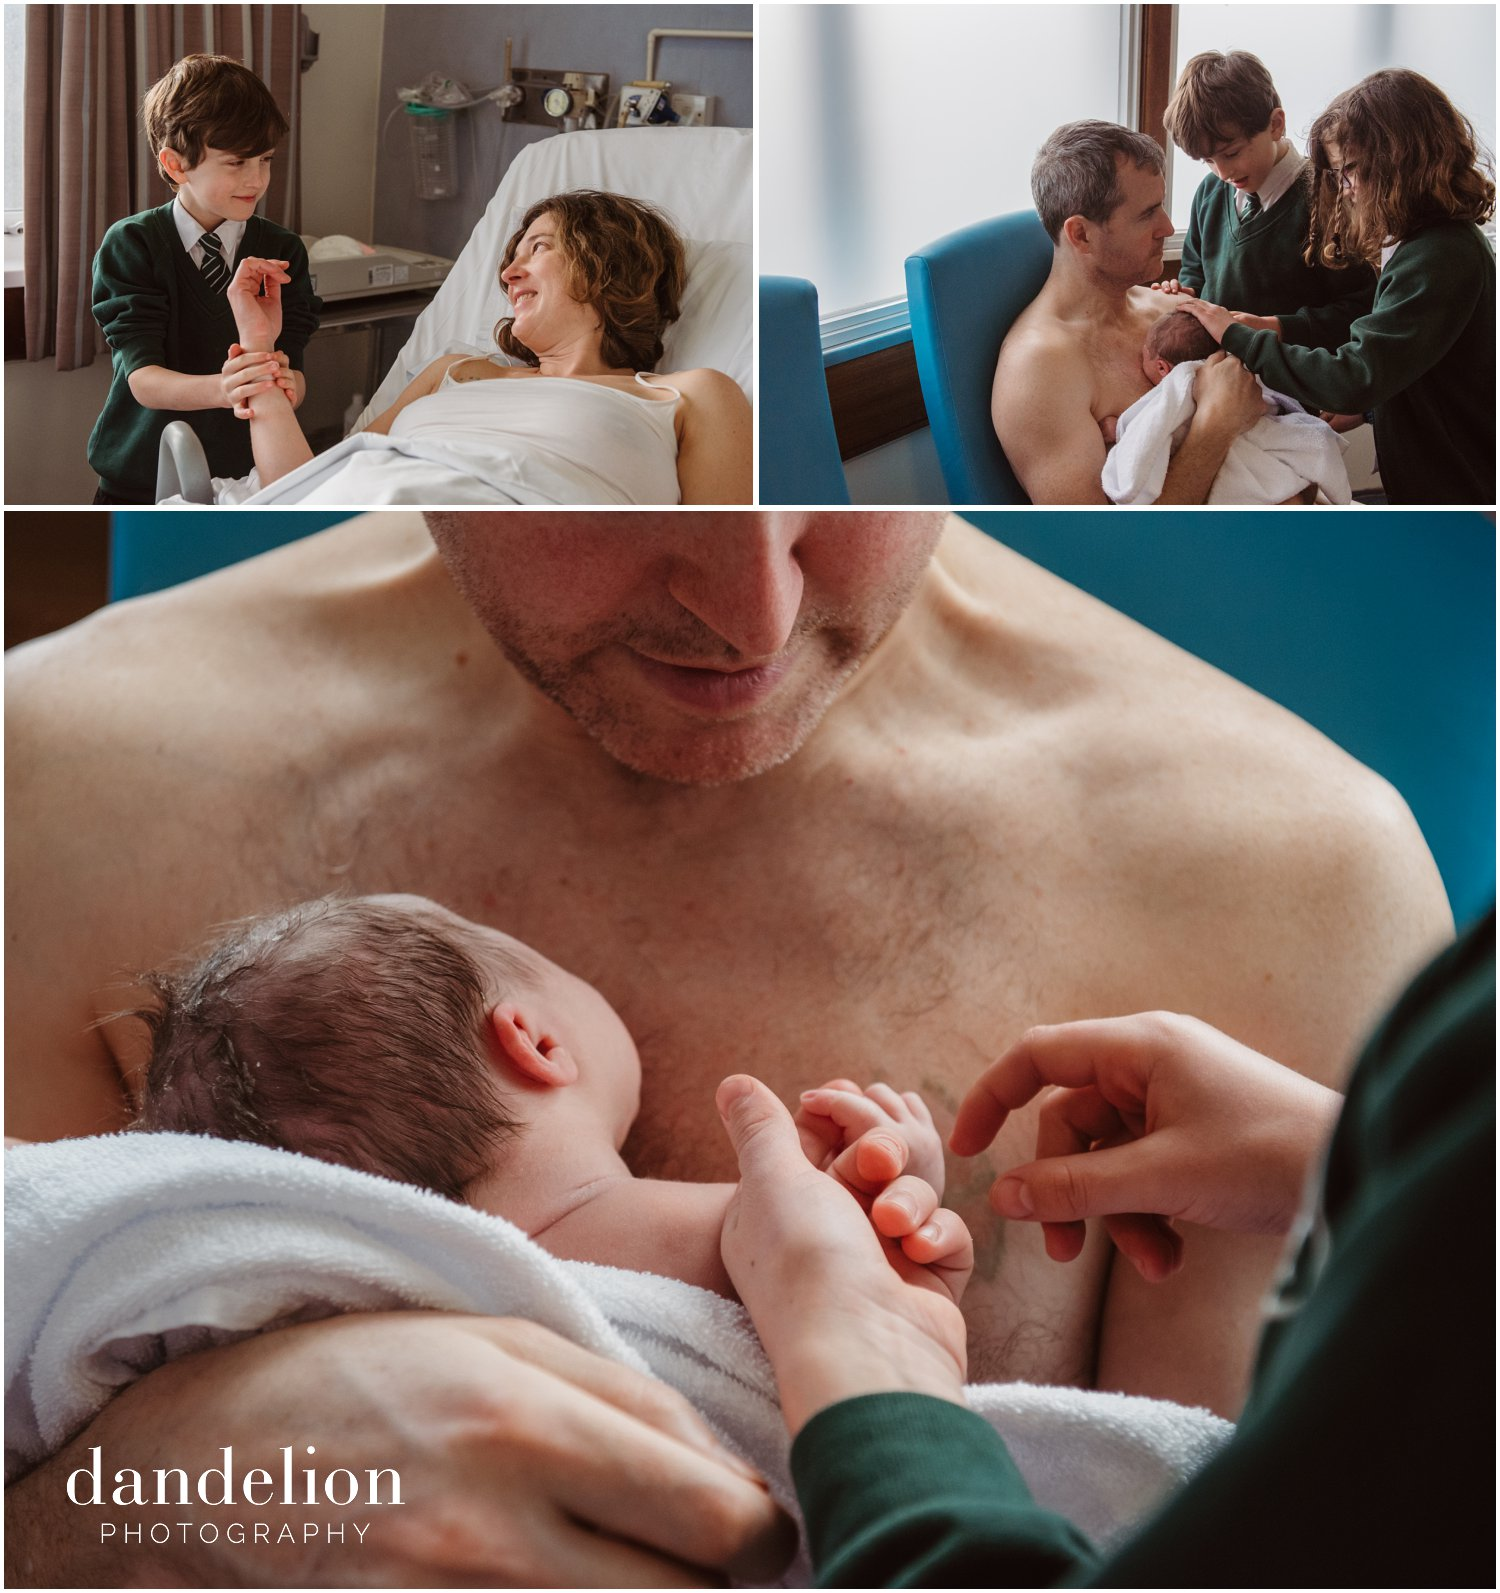 professional family photography capturing birth